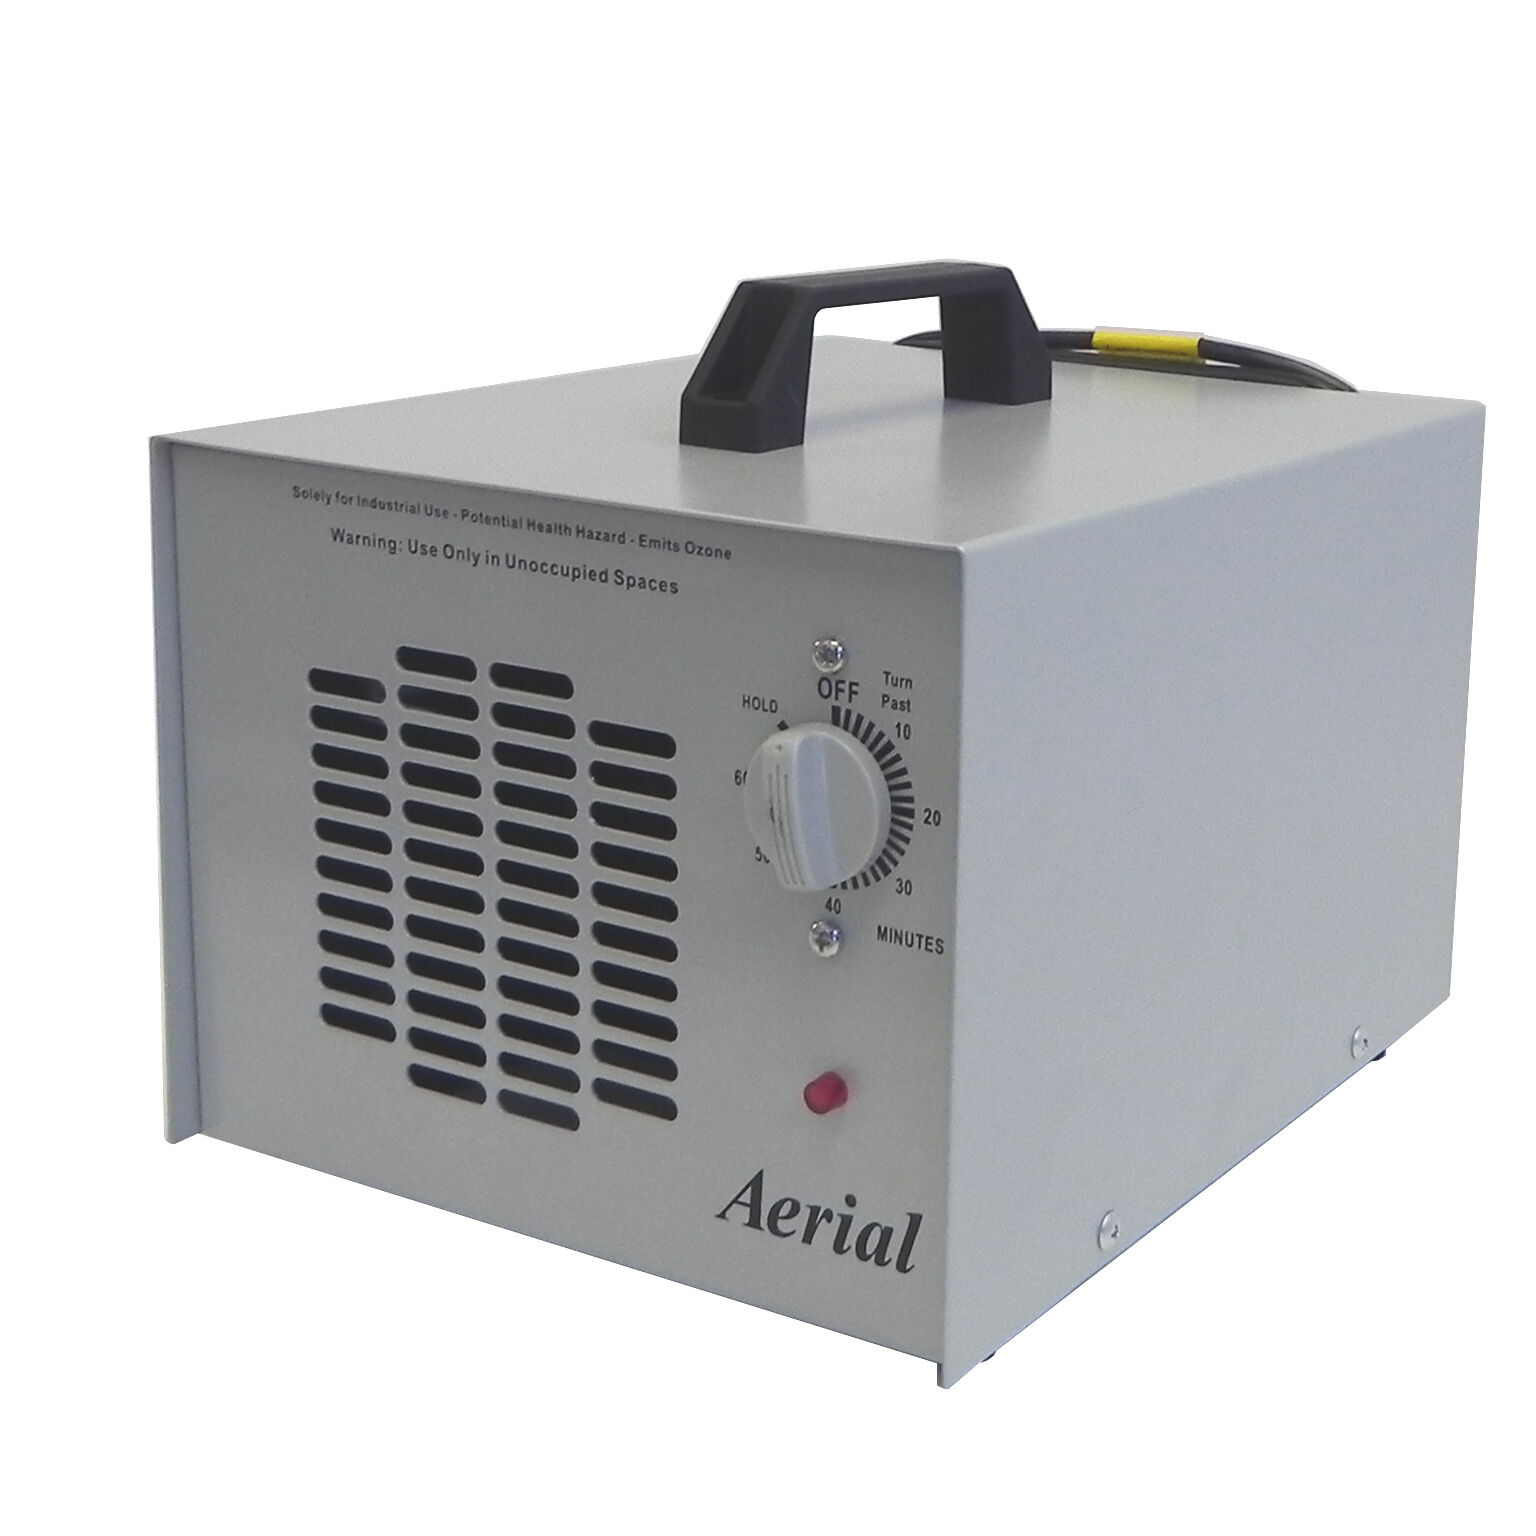 Industrial Air Cleaners : Ariel commercial industrial air purifier ozone generator